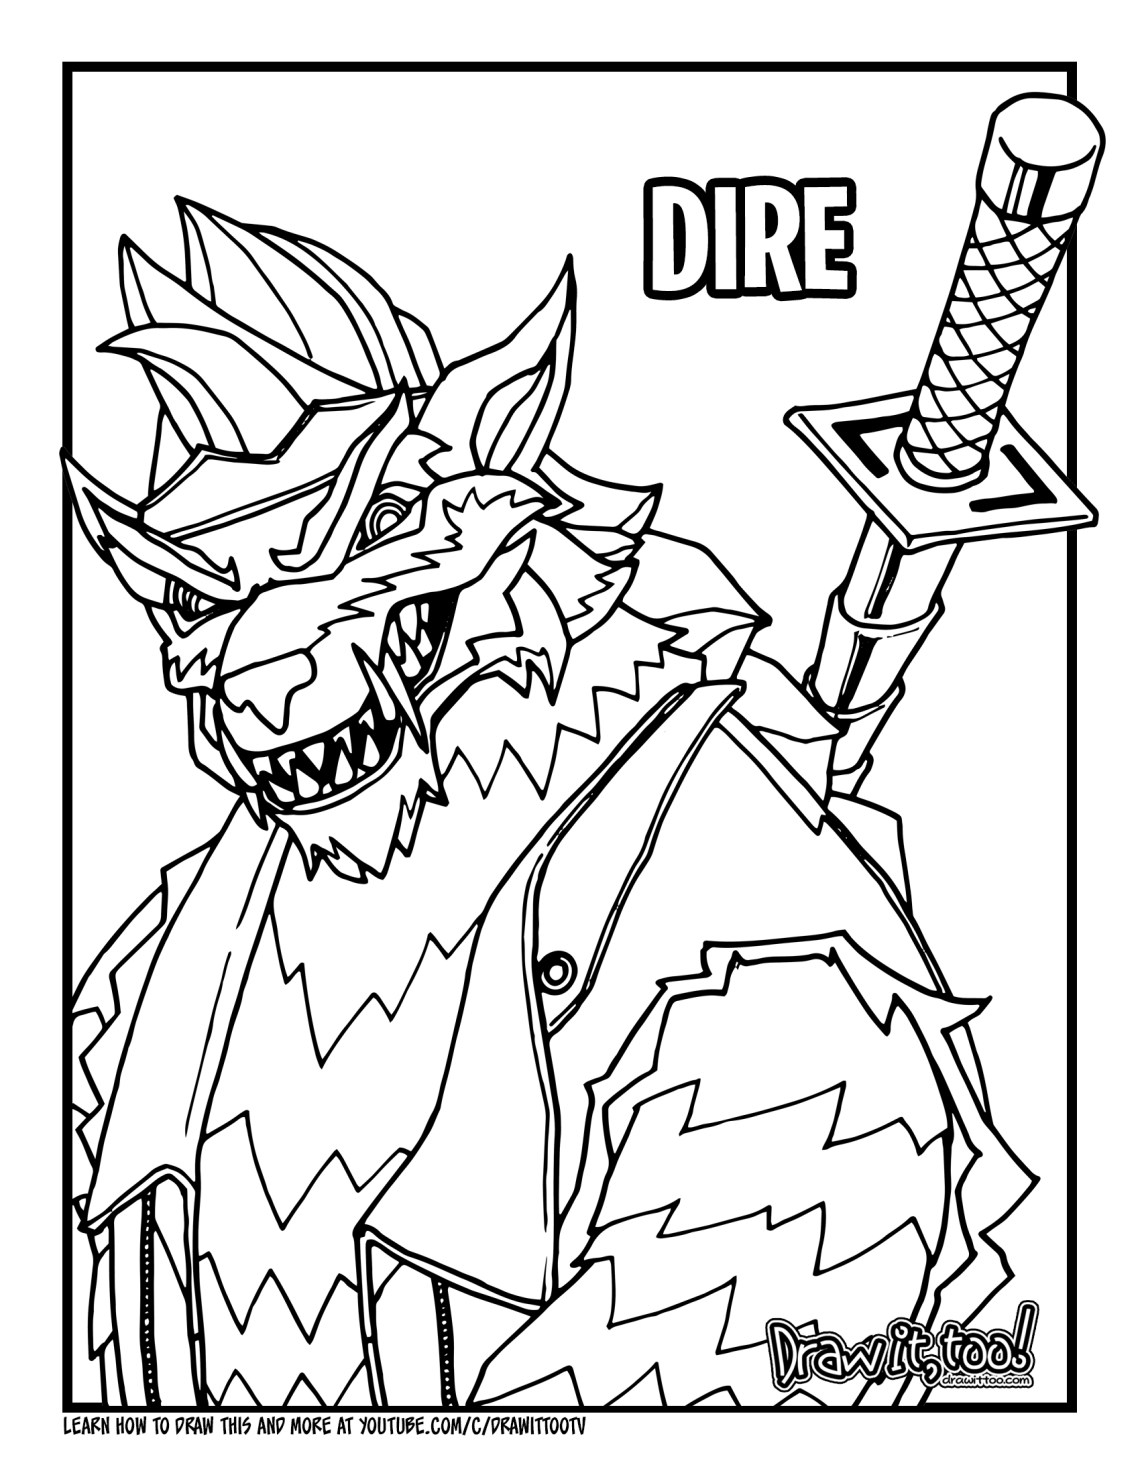 It is an image of Sly Fornite Coloring Pages